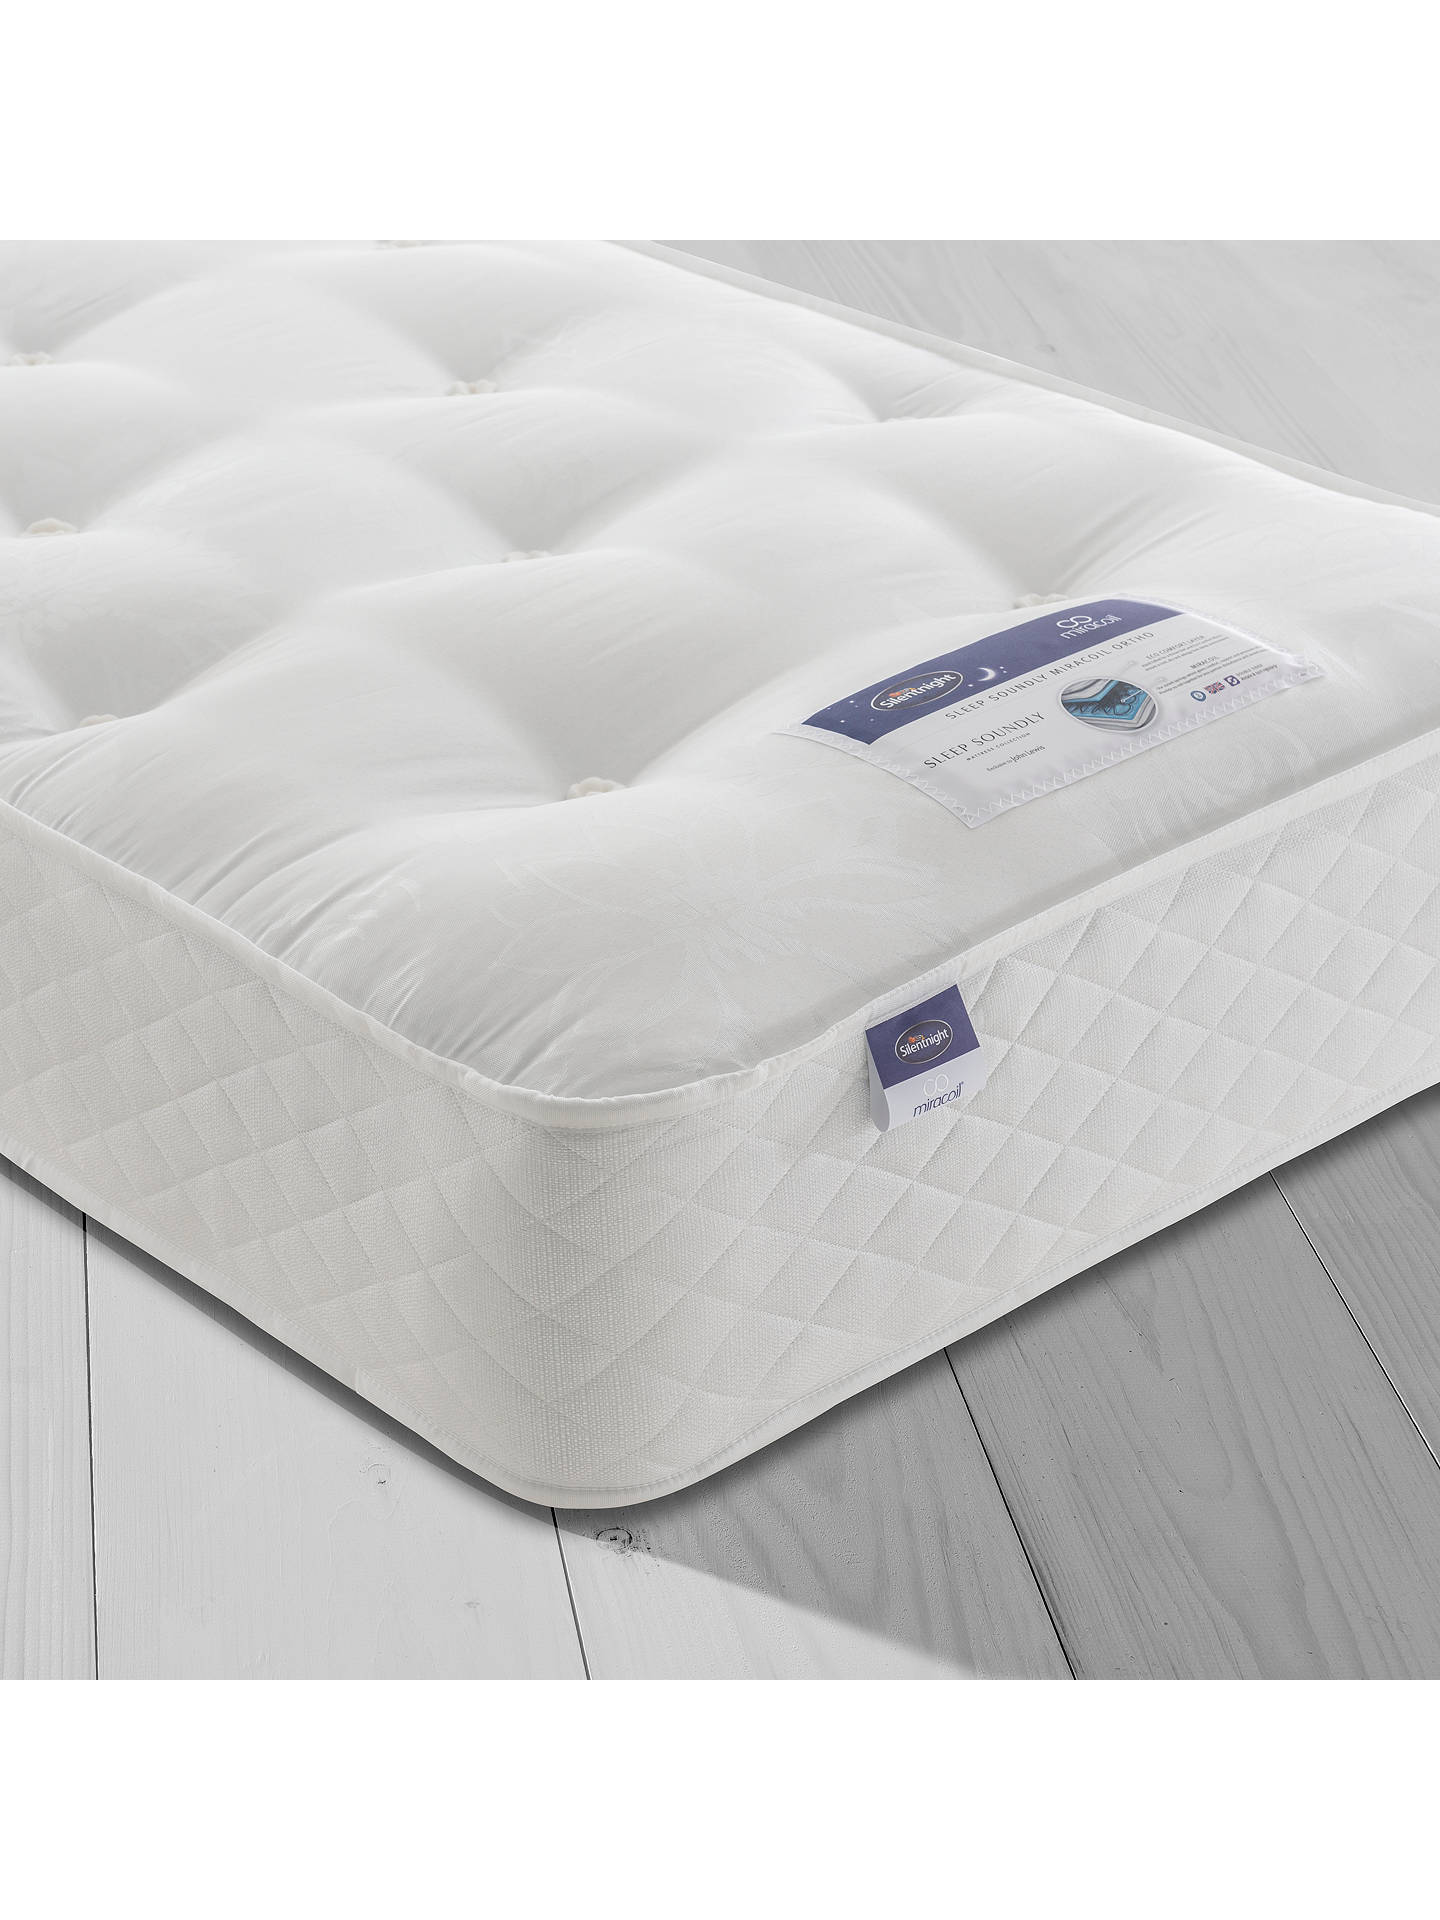 BuySilentnight Sleep Soundly Miracoil Ortho Mattress, Firm, Single Online at johnlewis.com